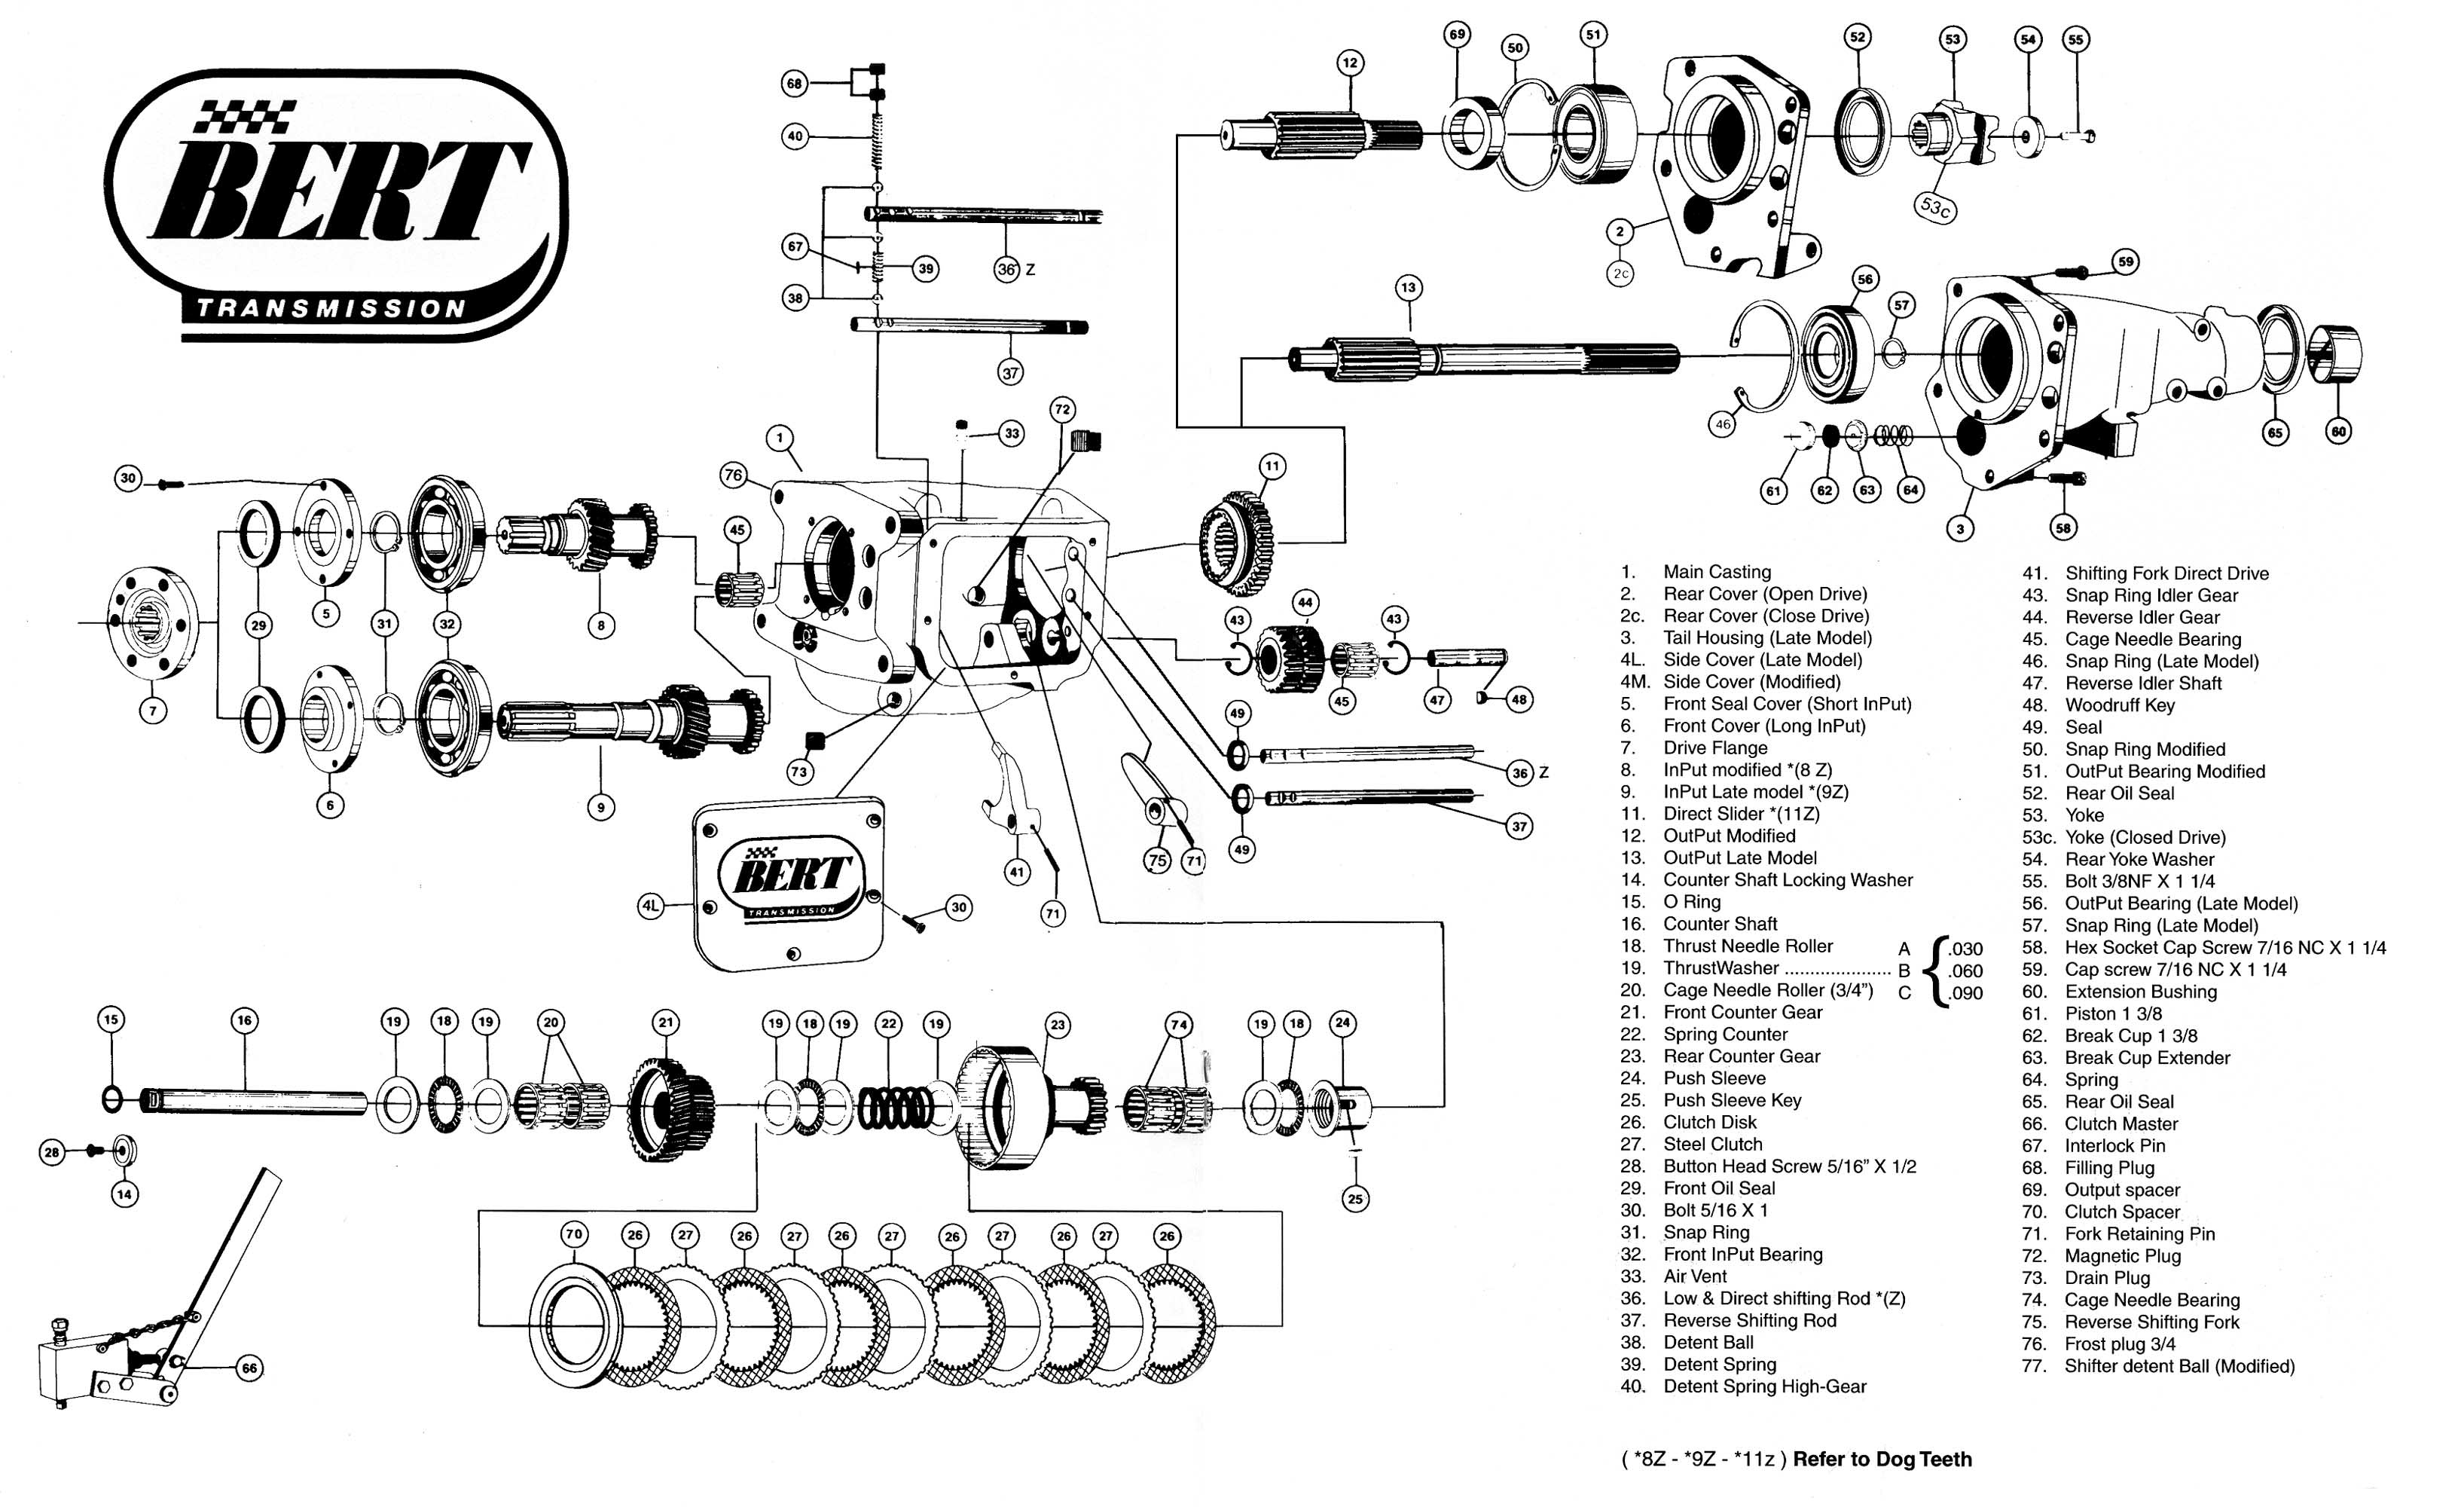 th400 transmission diagram 1992 toyota truck wiring automatic exploded view autos post